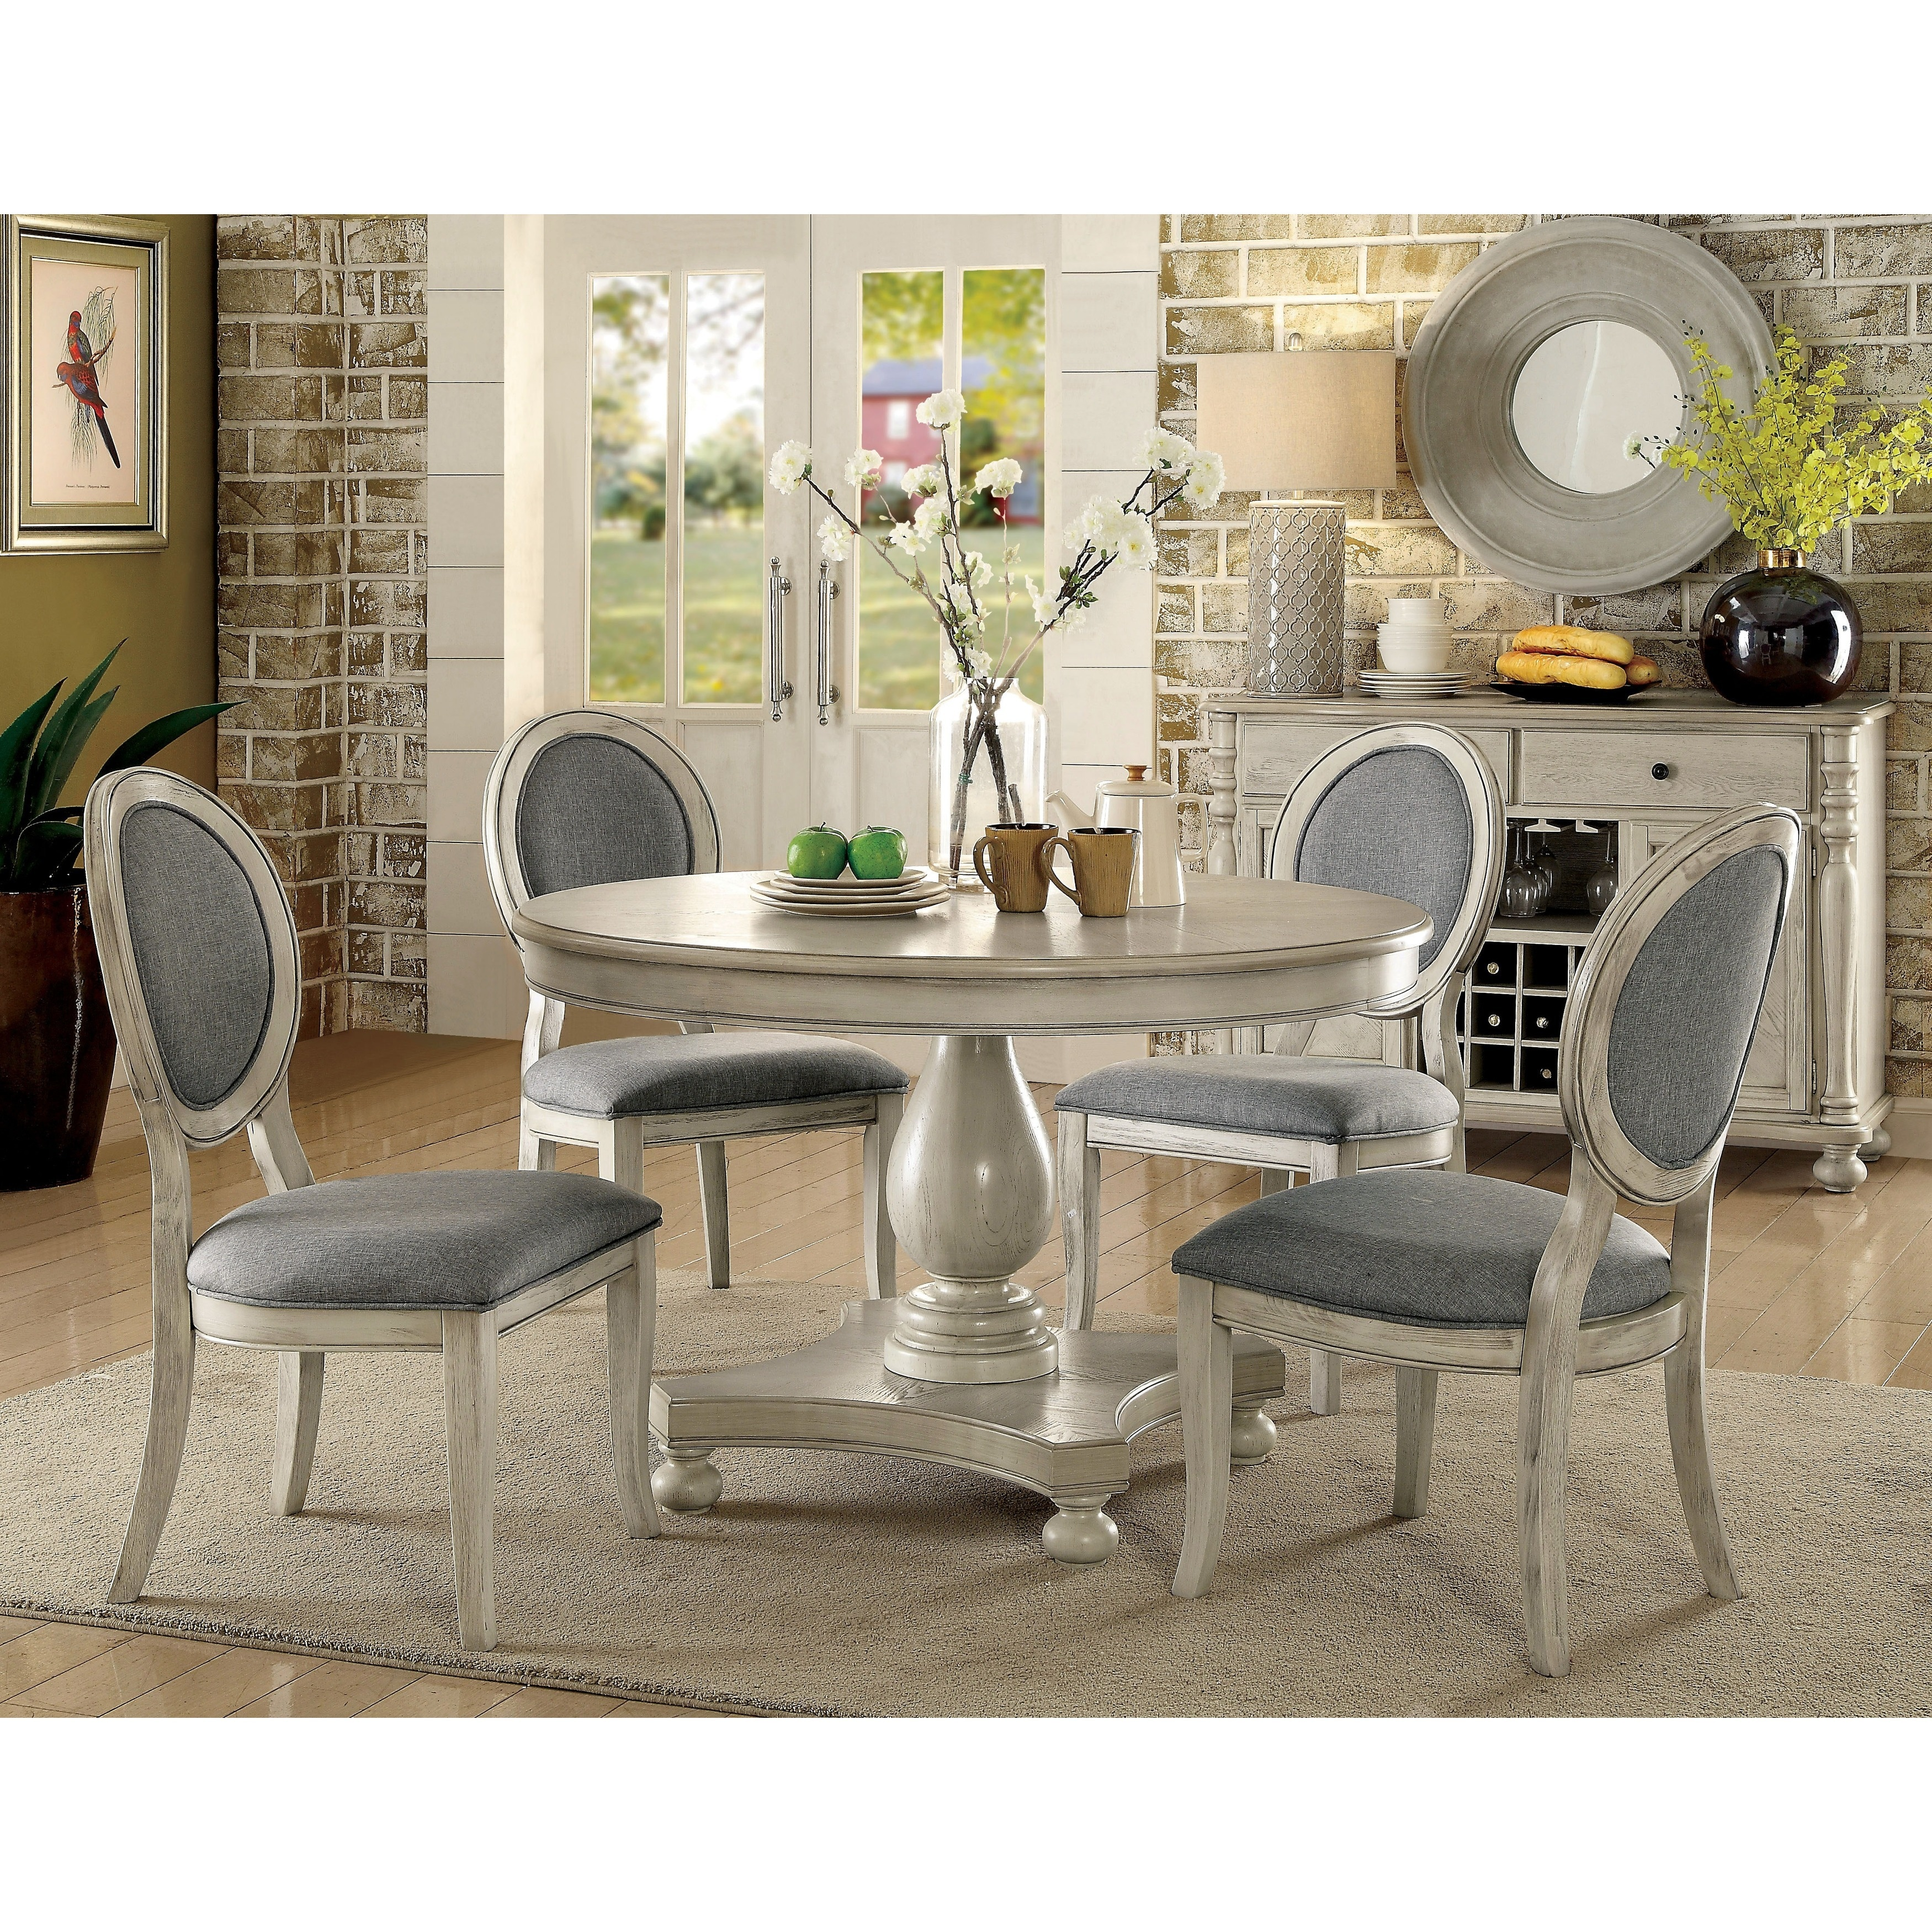 Furniture Of America Lelan Traditional Rustic Round 48 Inch Dining Table    Walmart.com